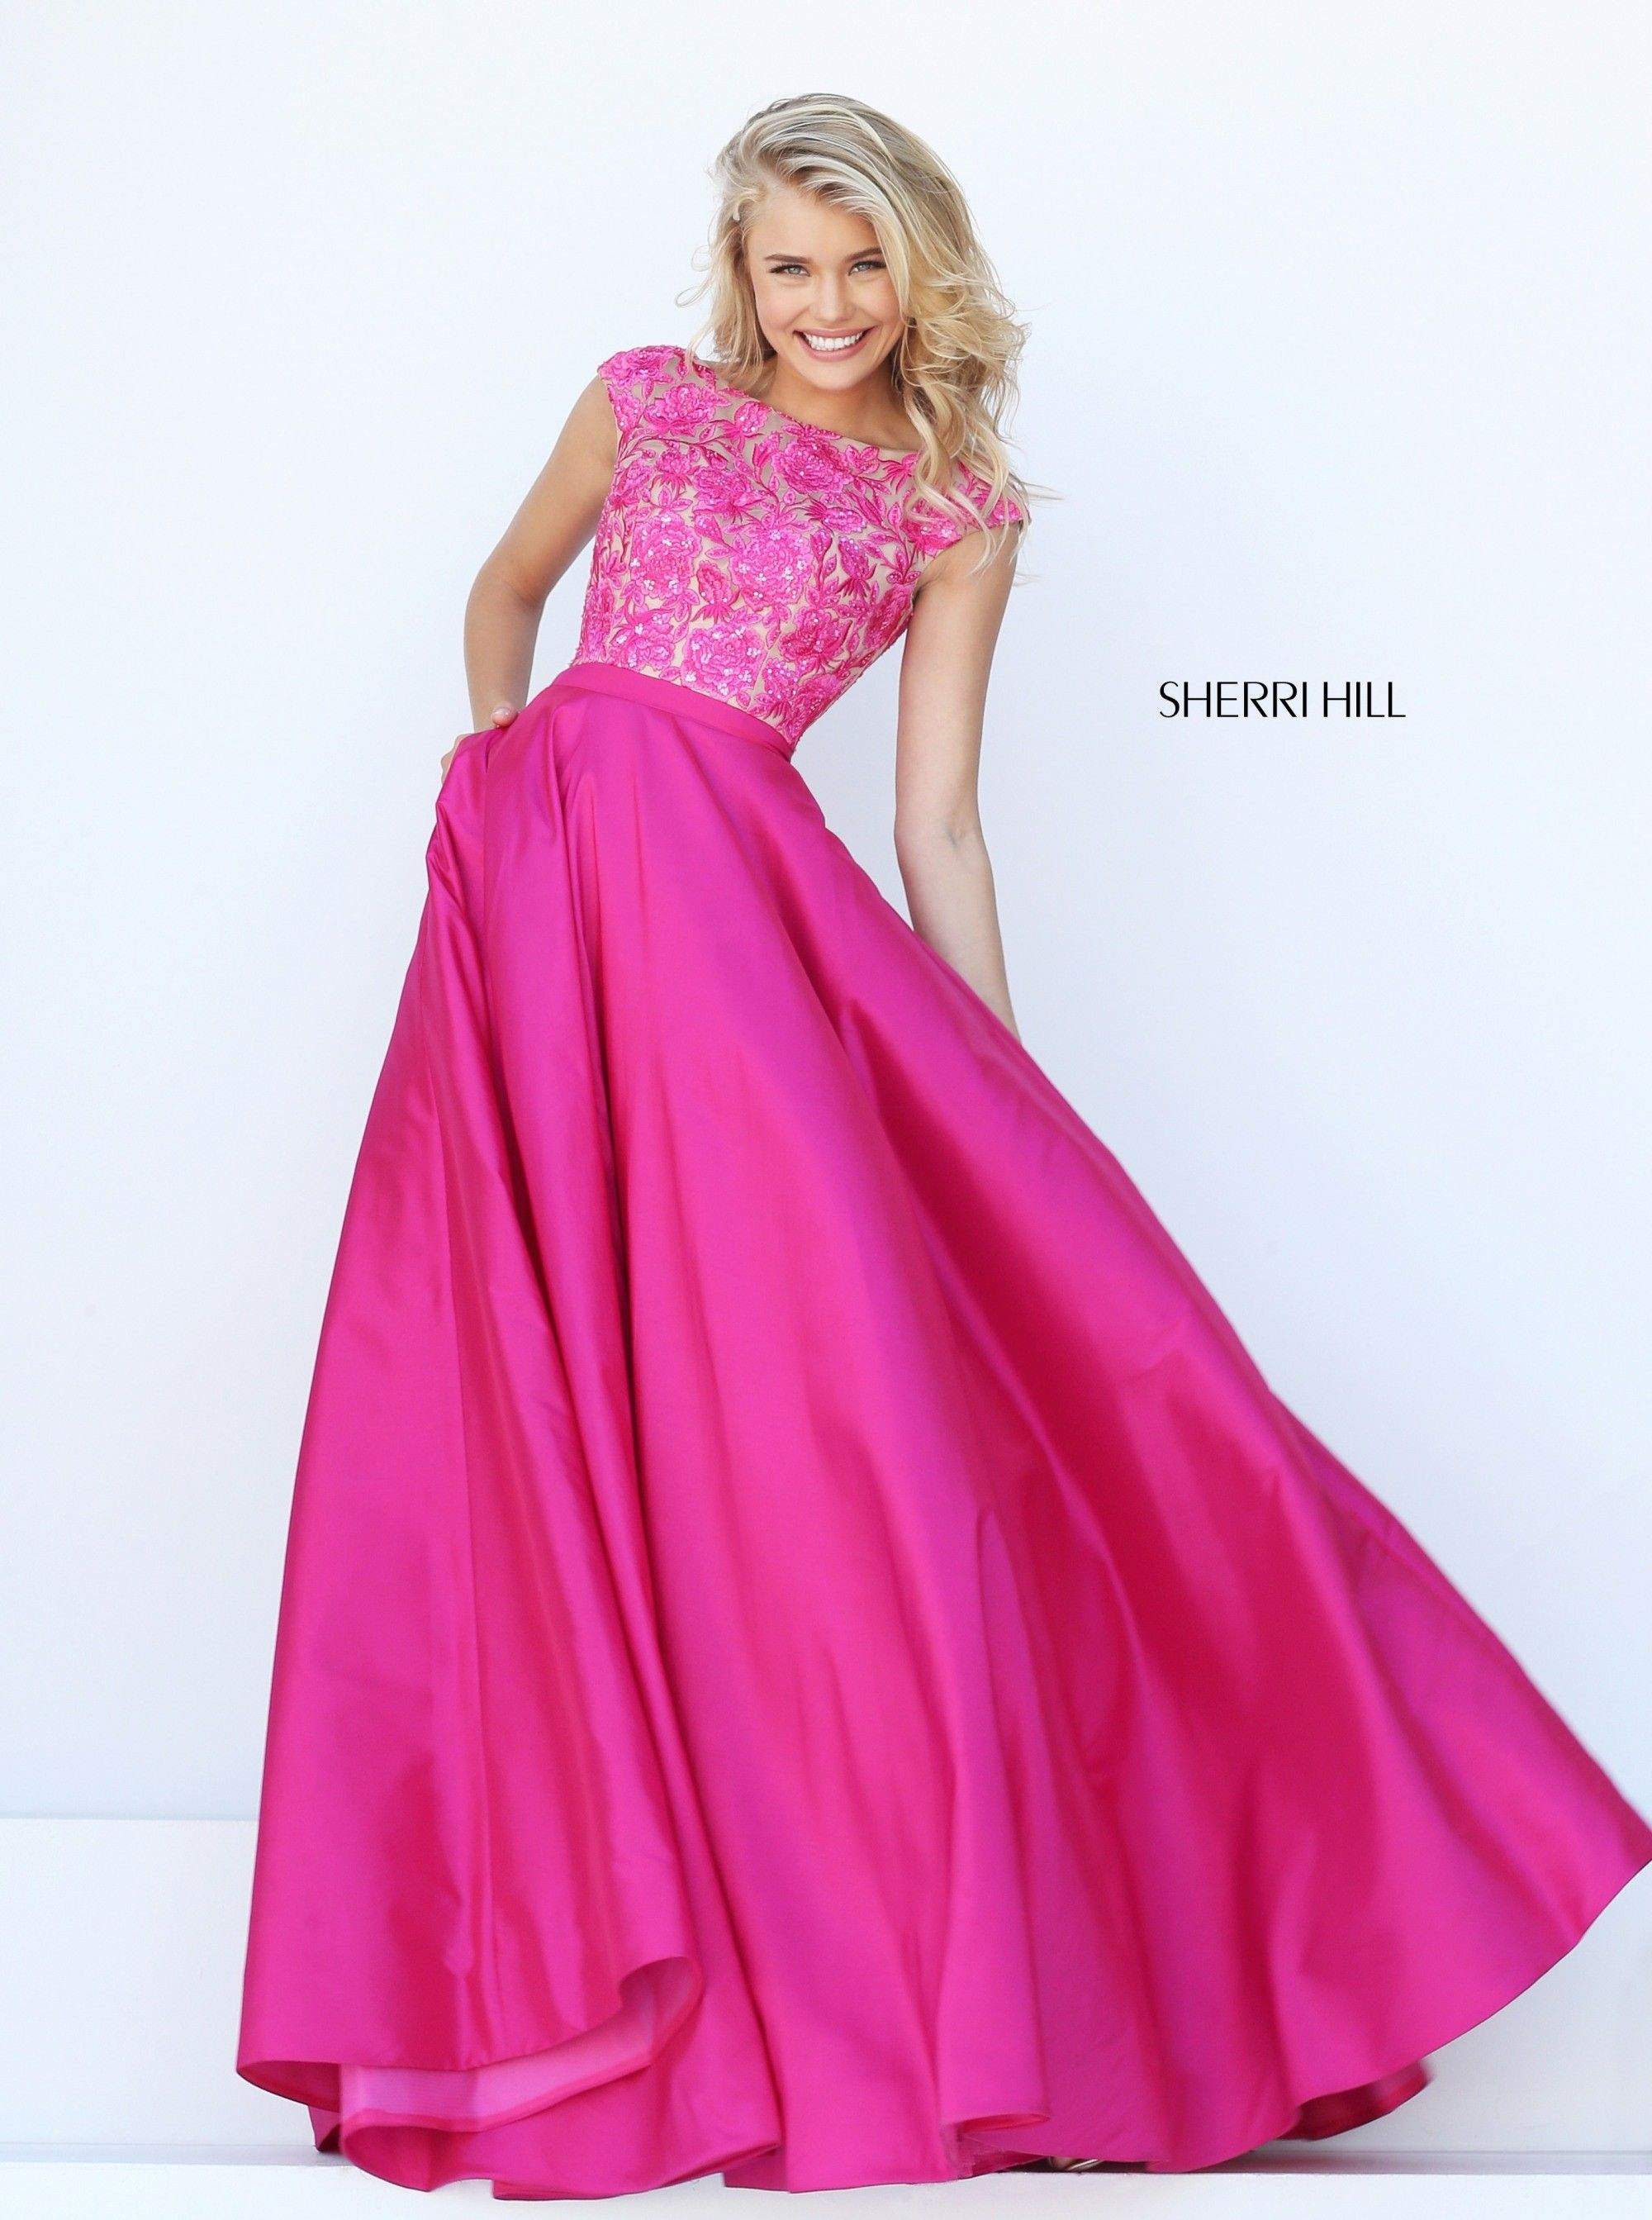 Sherri Hill 50346 Scoop Back Prom Dress | Prom/homecoming ...